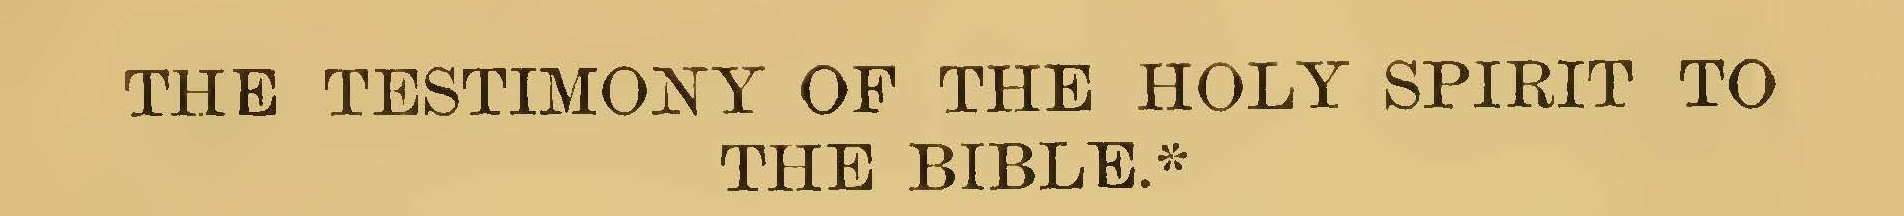 DeWitt, John, The Testimony of the Holy Spirit to the Bible Title Page.jpg